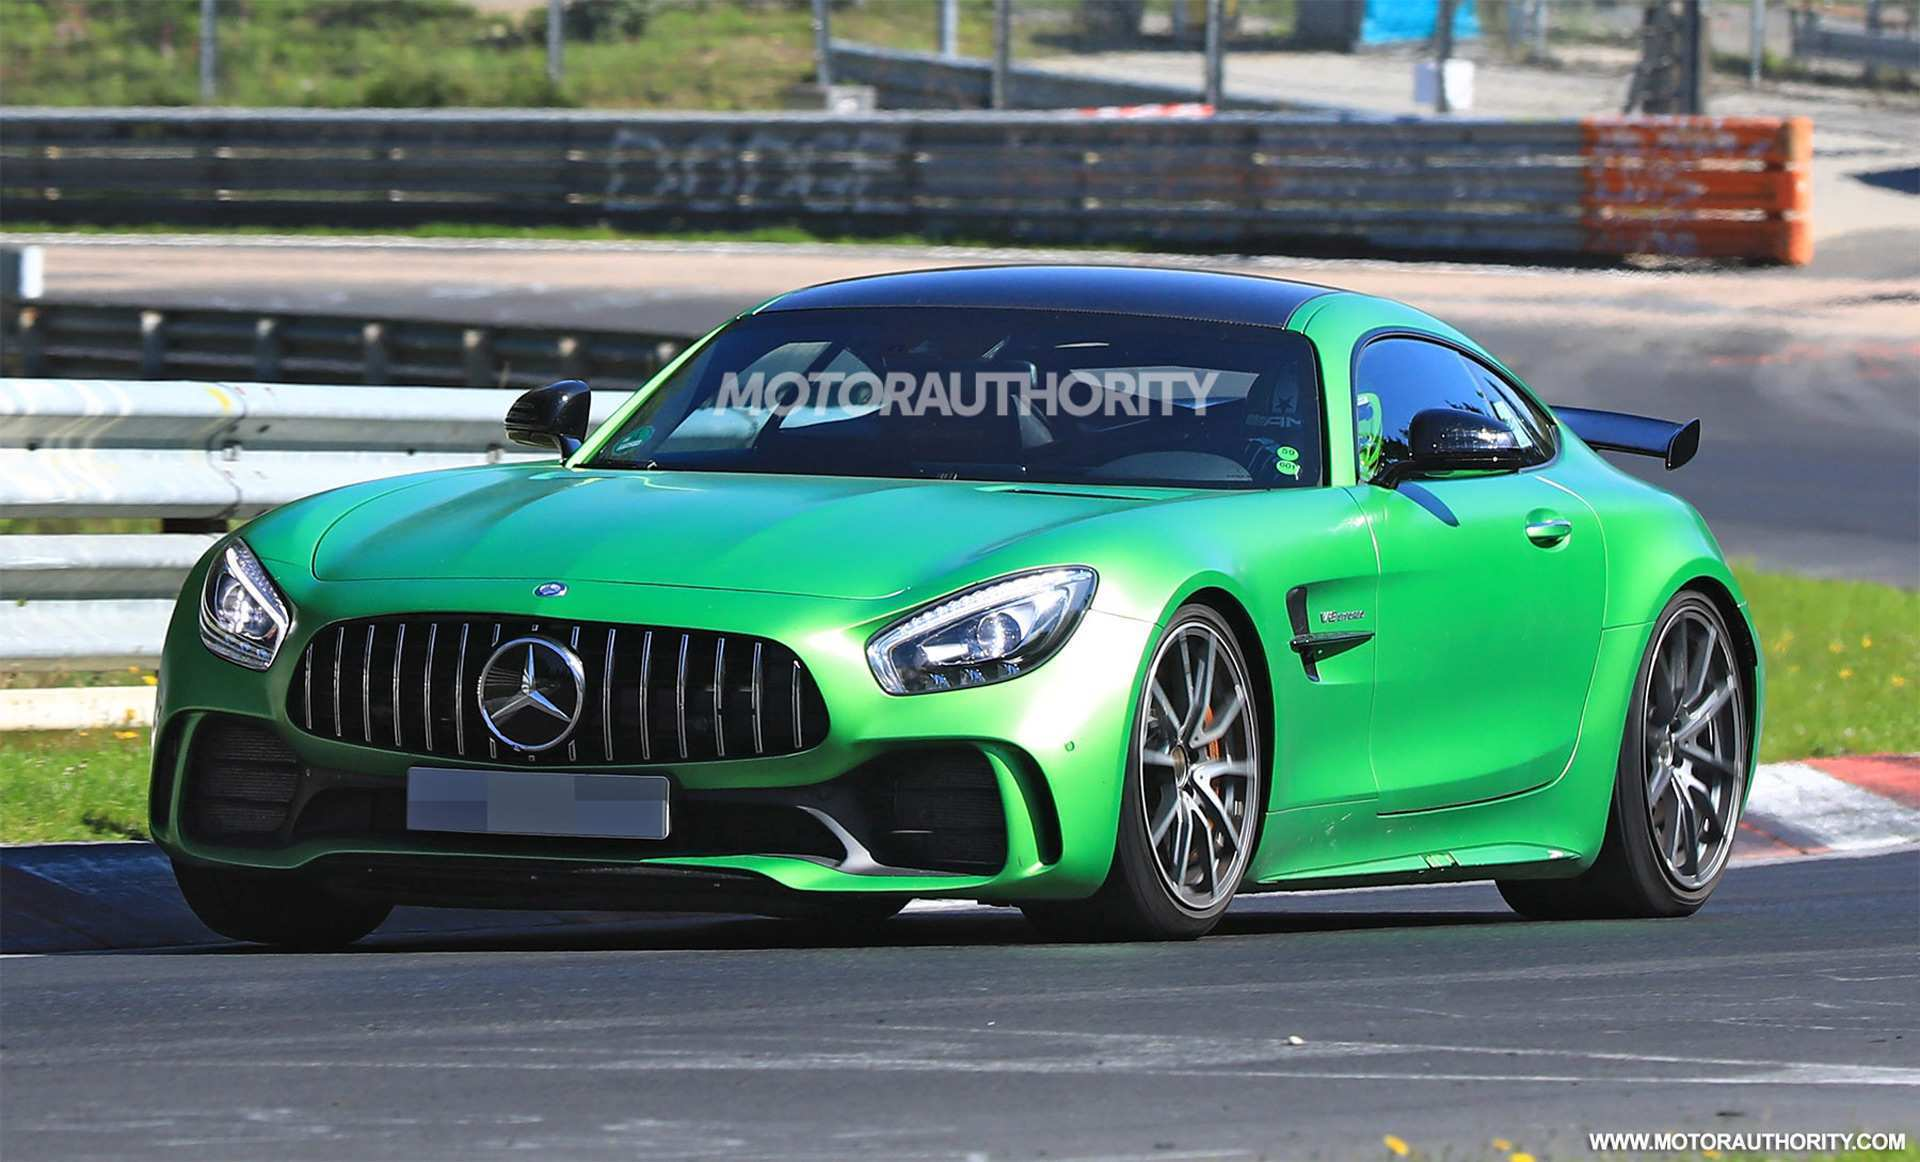 37 Gallery of Mercedes Amg Gt 2019 History for Mercedes Amg Gt 2019